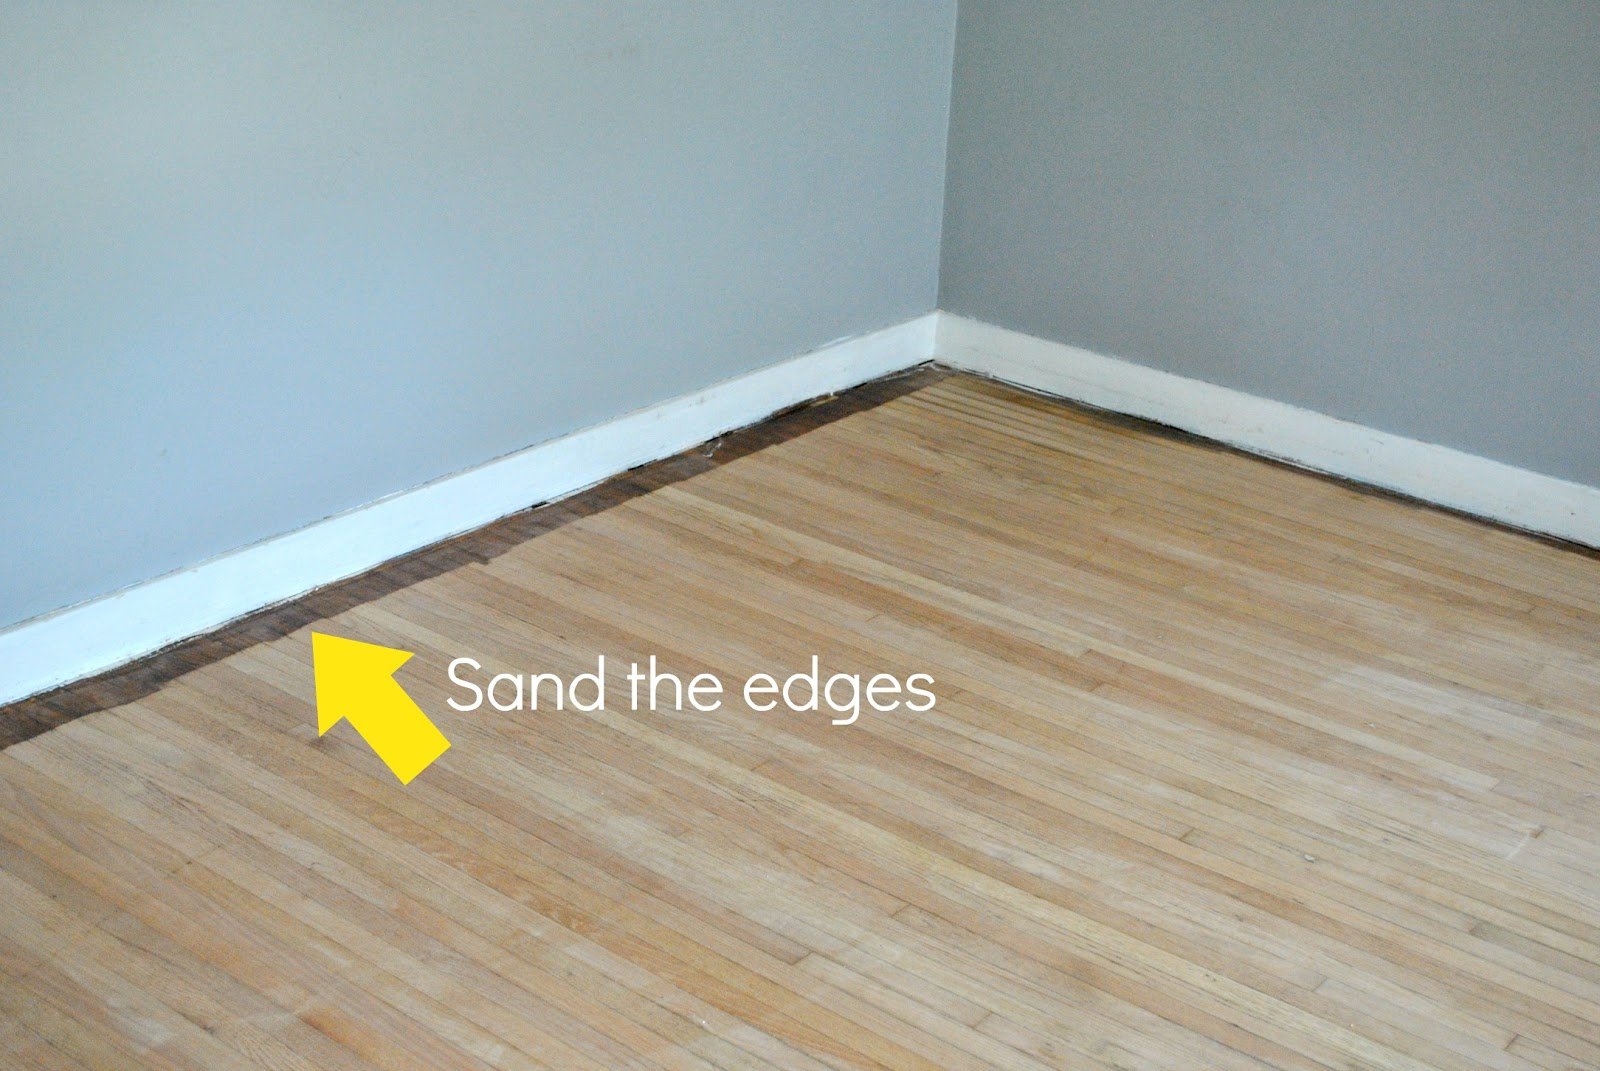 How to remove carpet and refinish wood floors part 1 for Carpet flooring